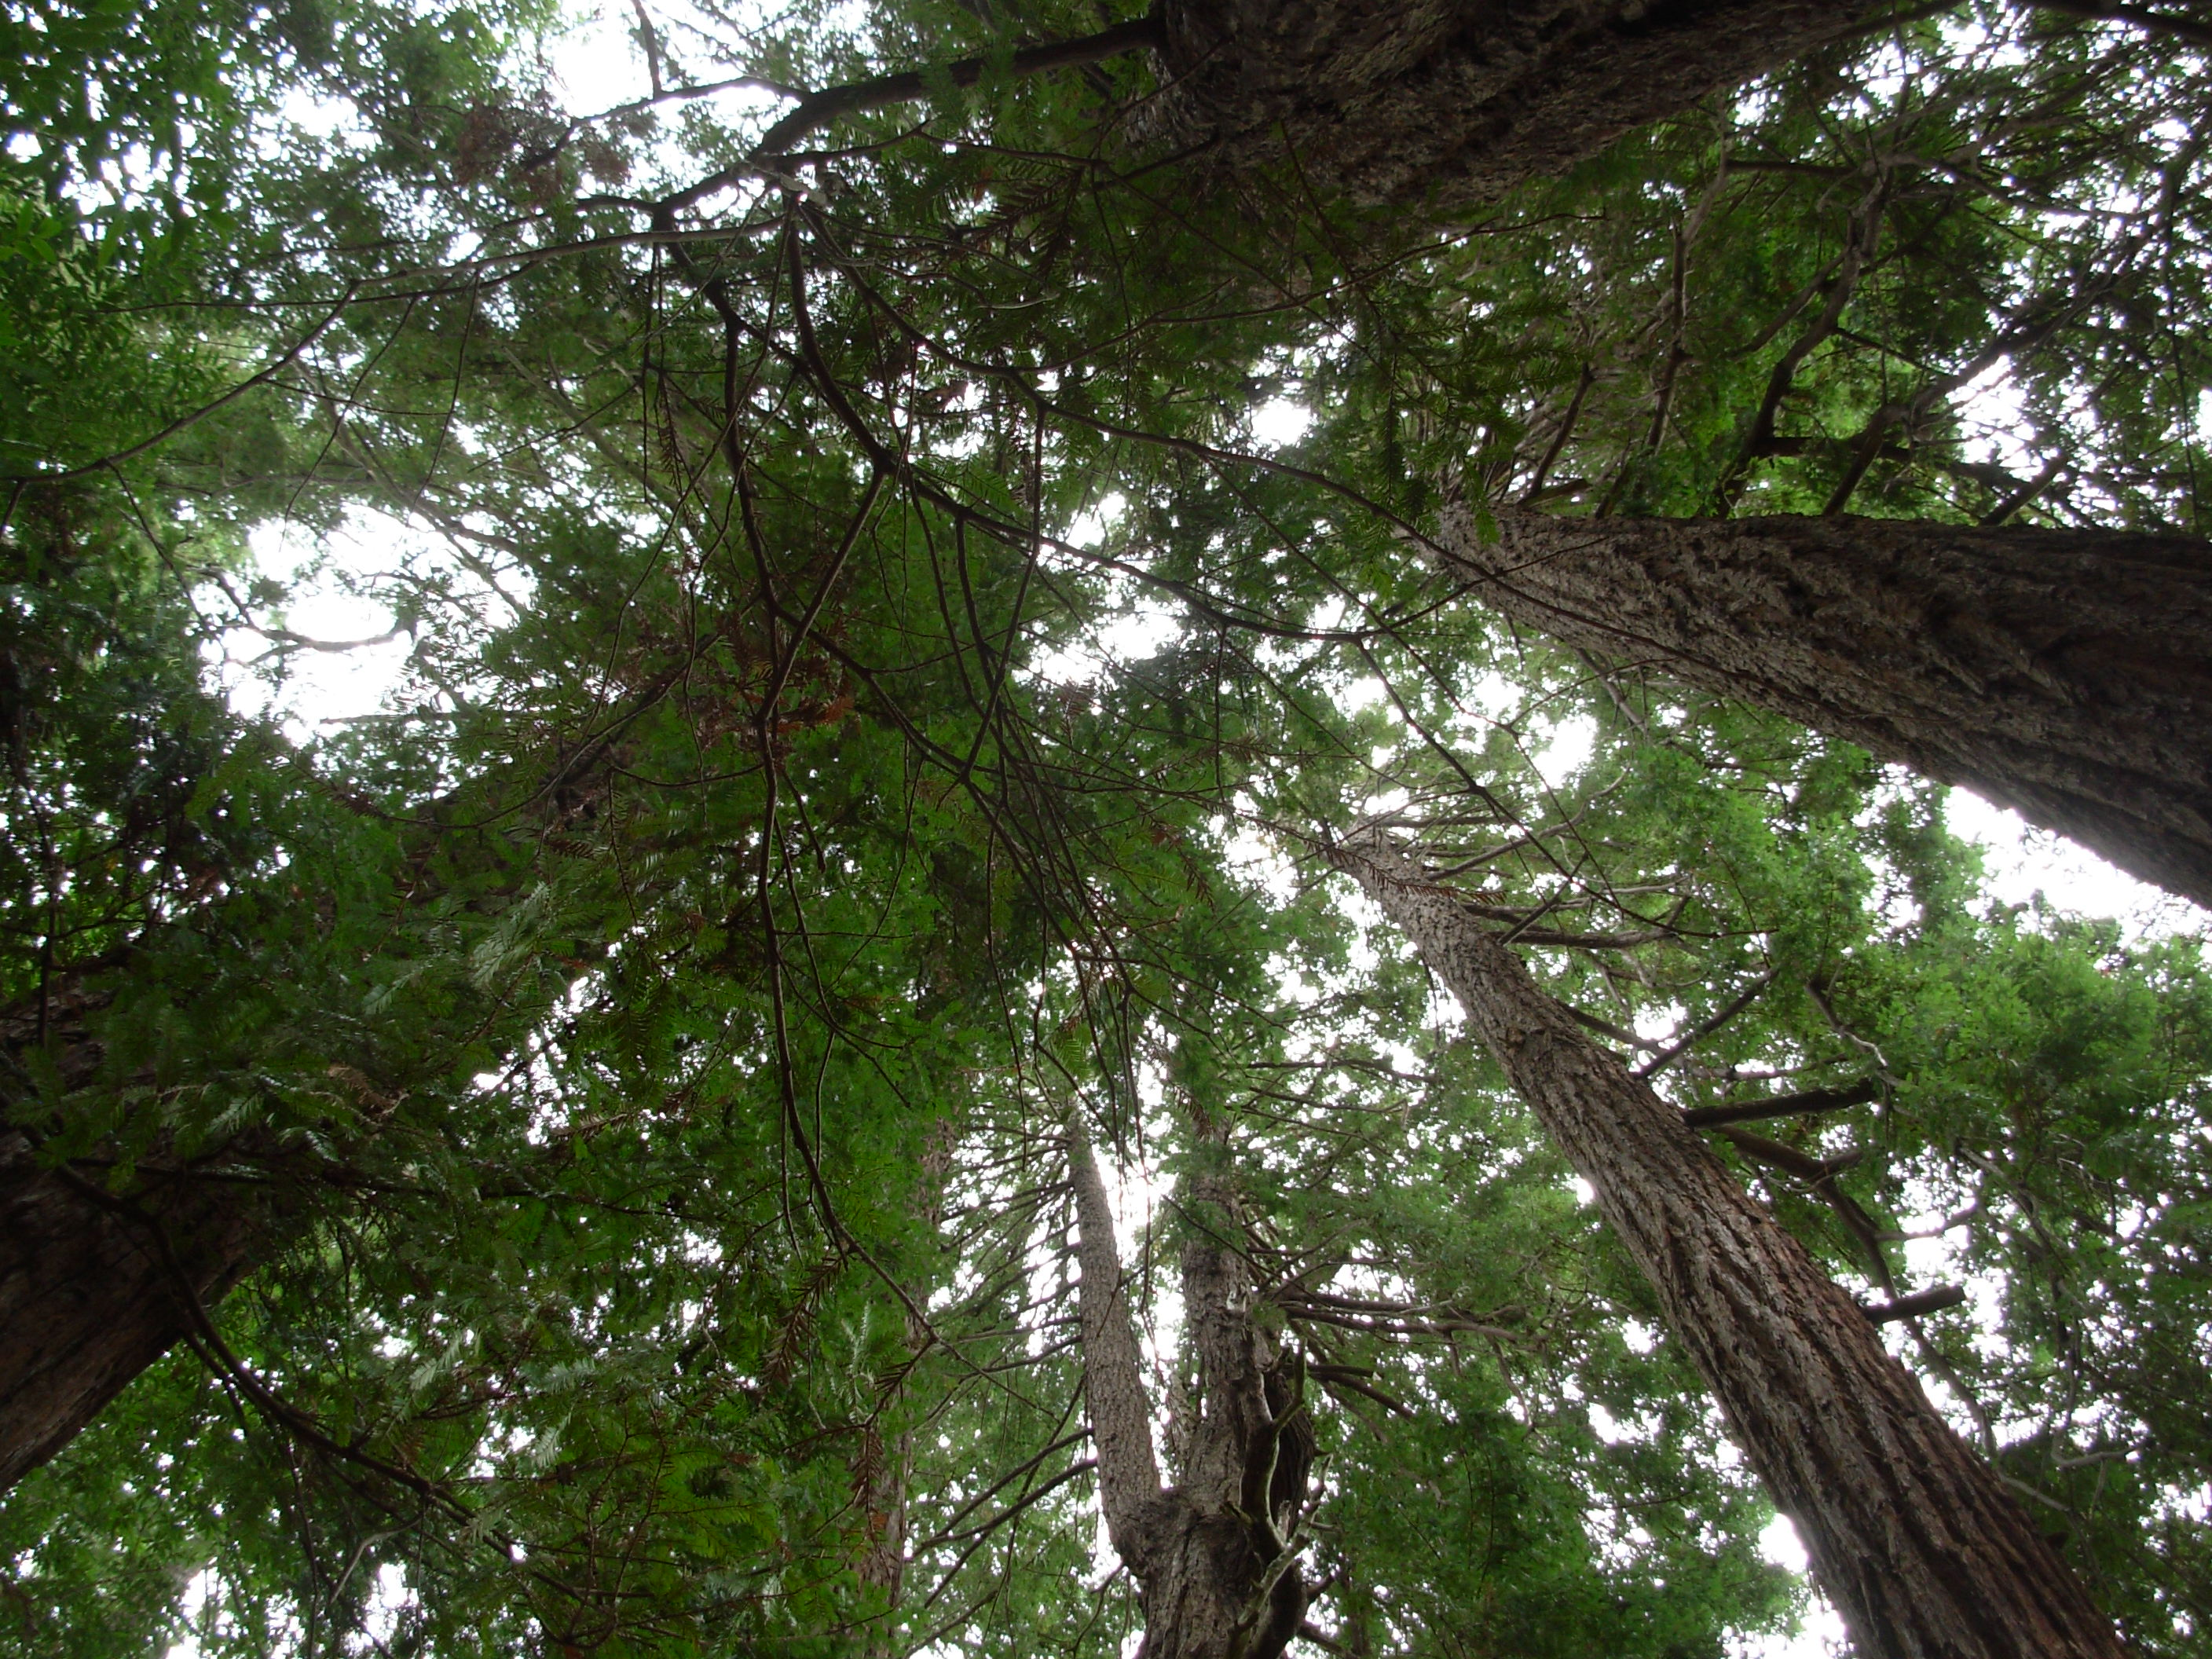 What is the thesis in a slow walk of trees